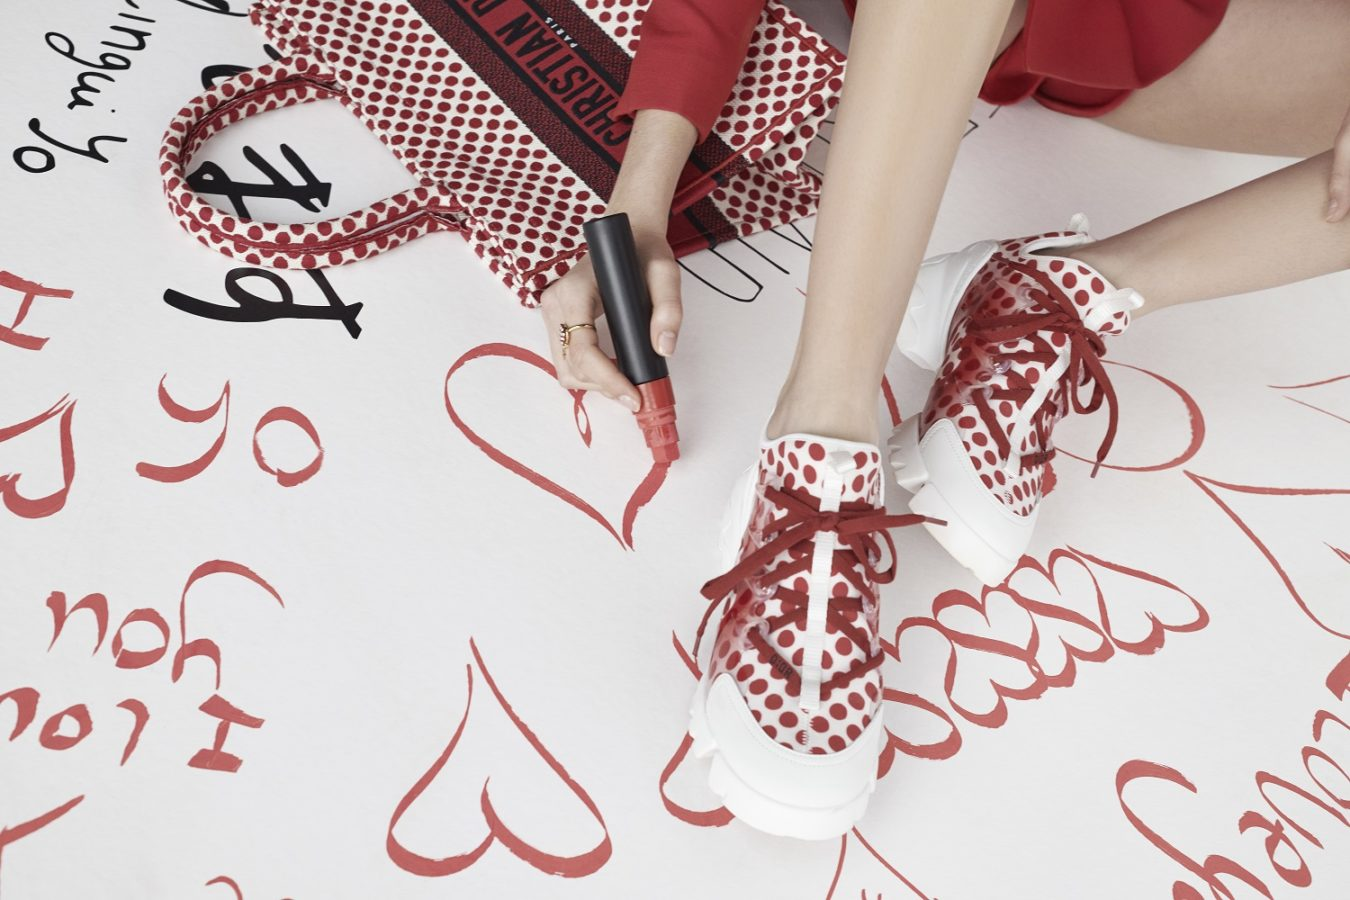 The Dioramour capsule collection is a love letter from Dior